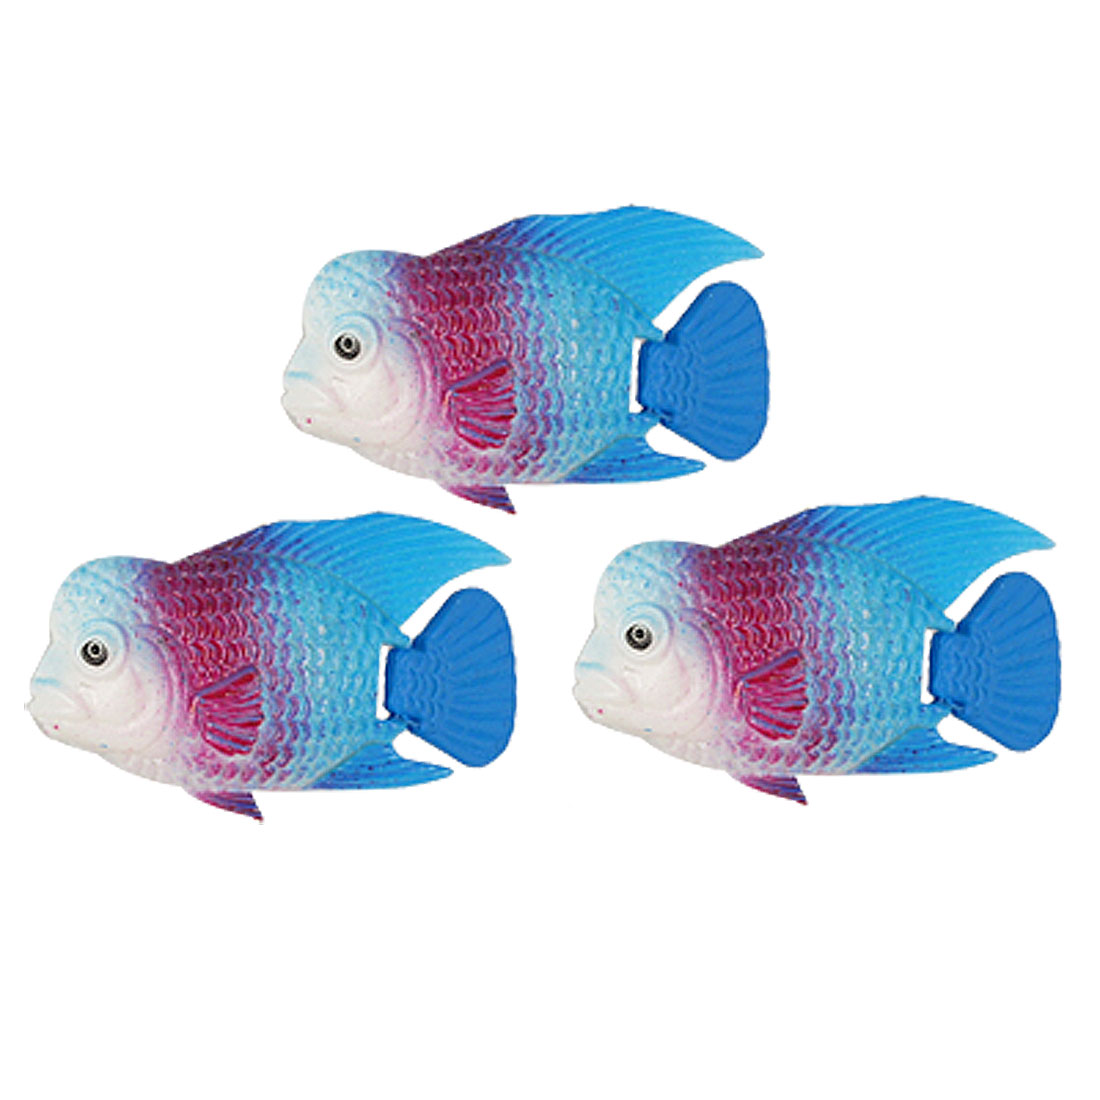 3 Pcs Aquarium White Mouth Blue Tail Floating Plastic Fish Decoration